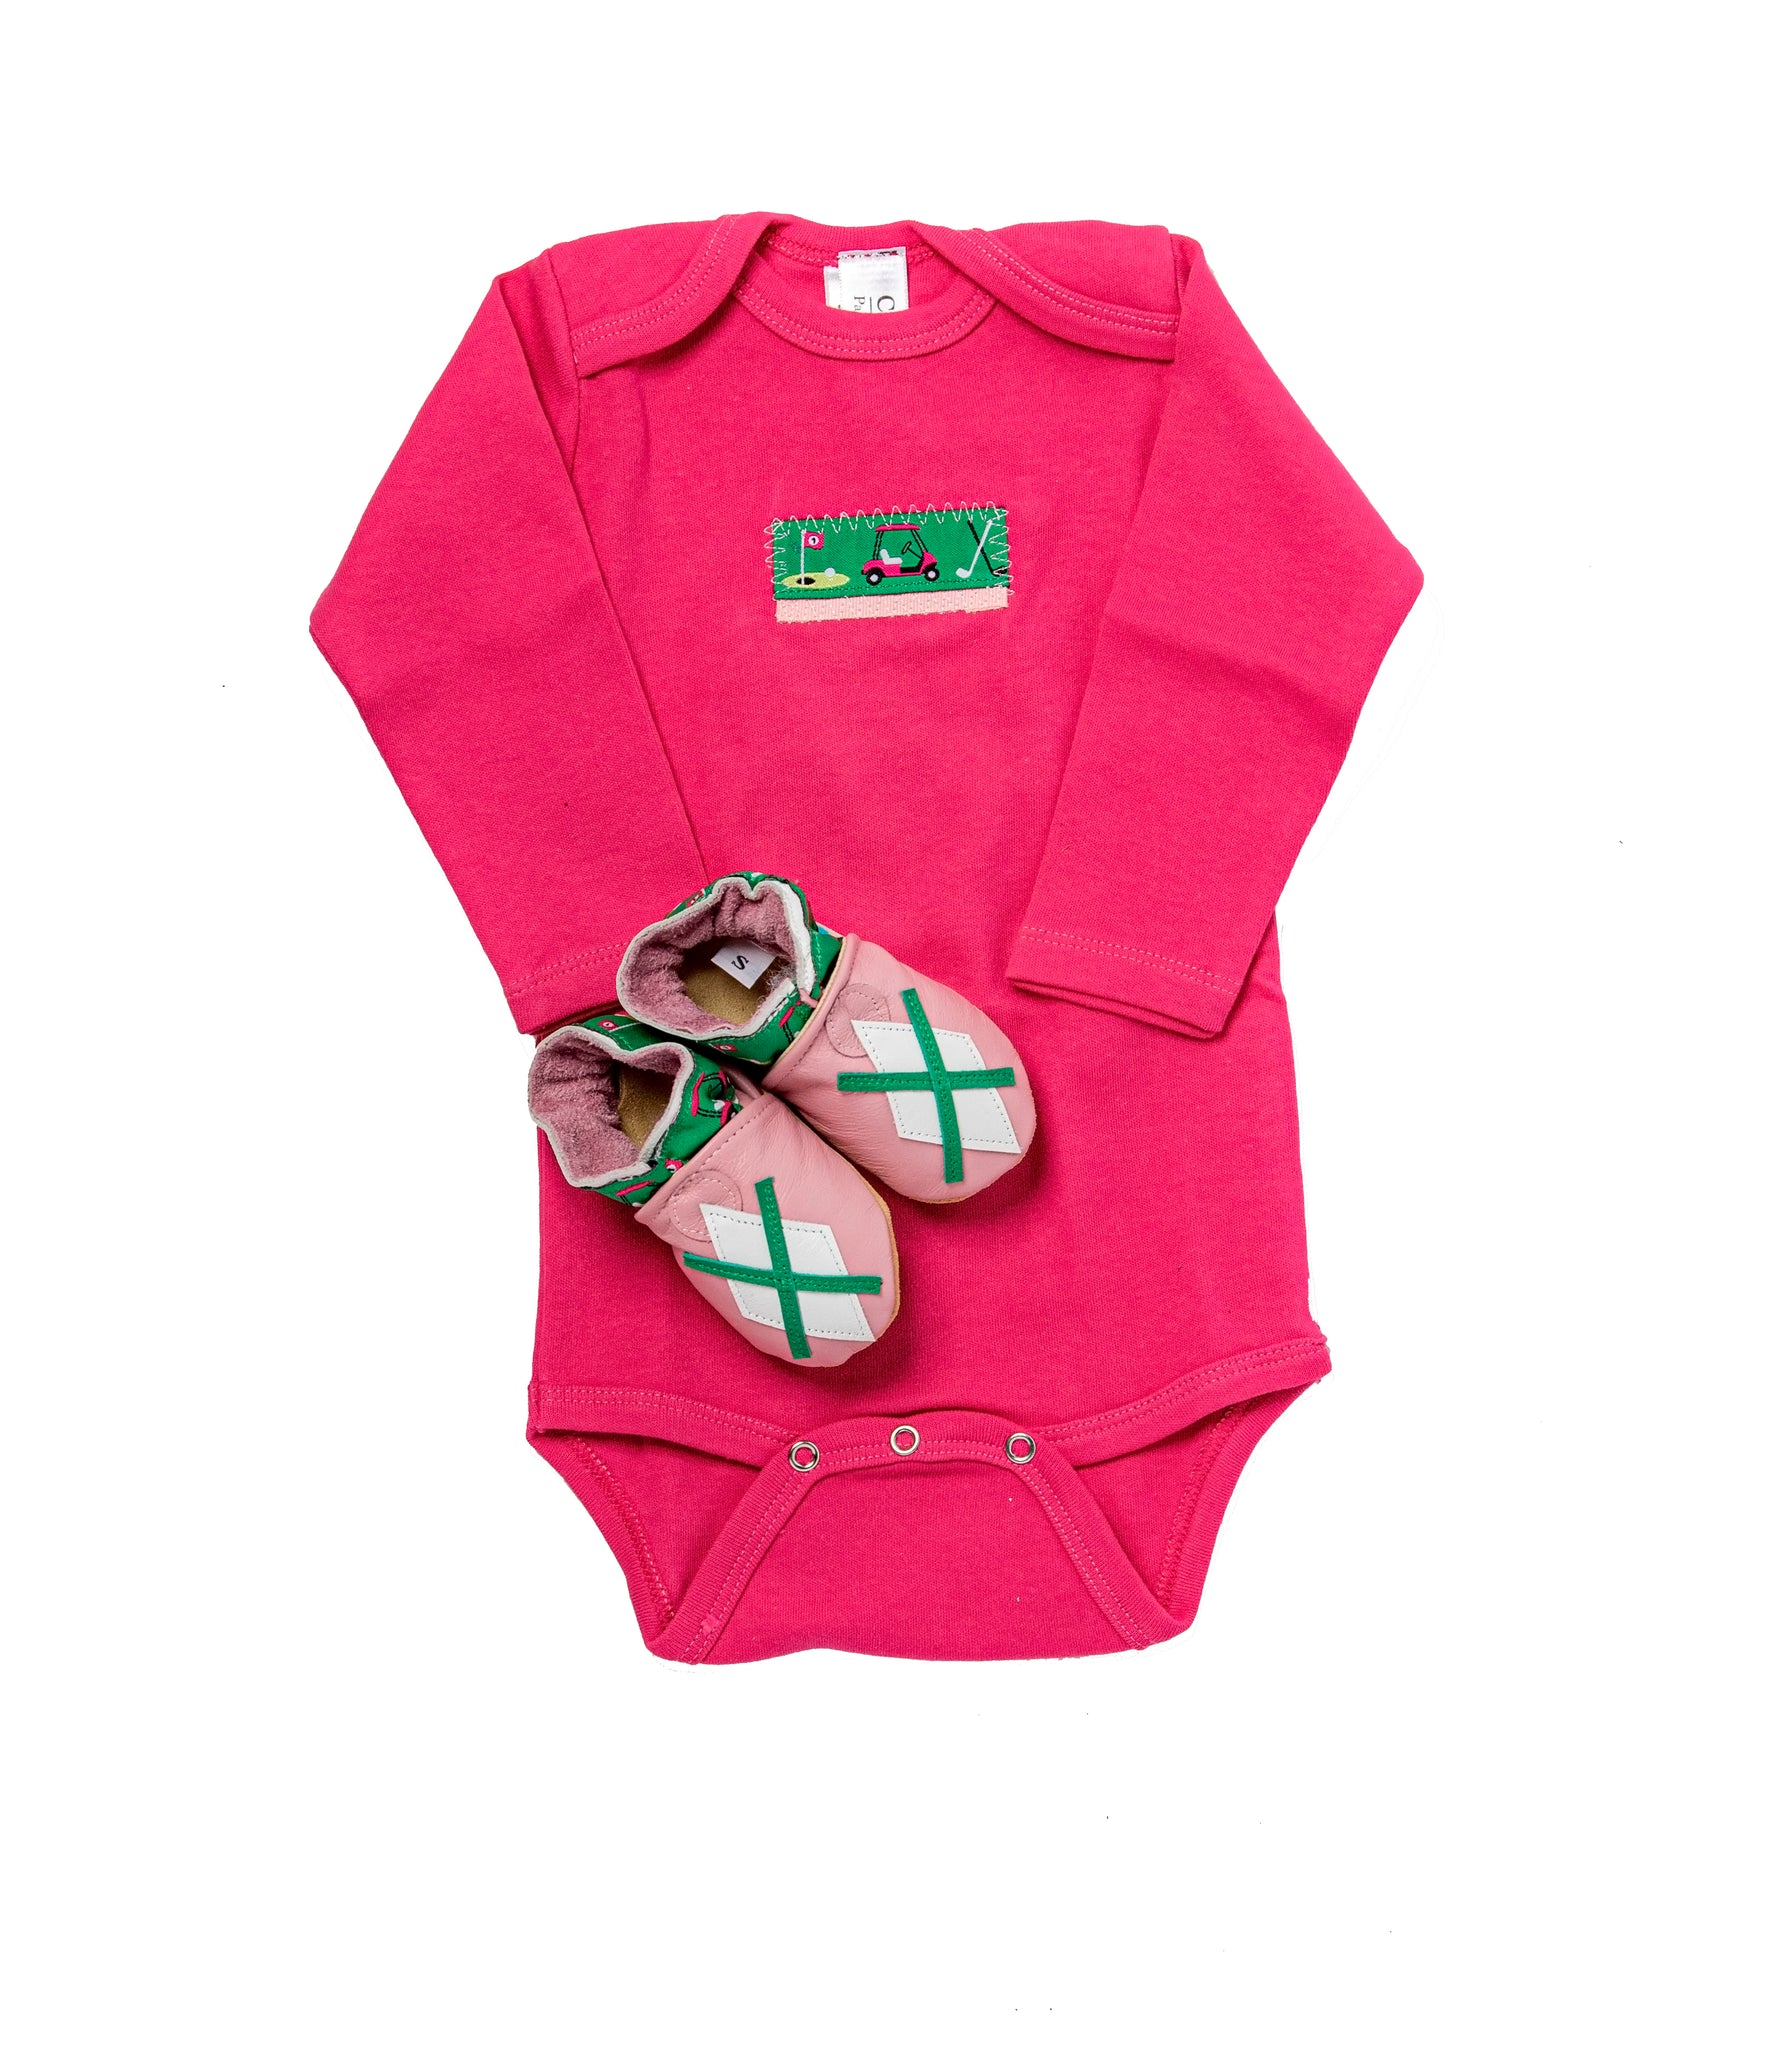 Tee Time Gift Set (raspberry onesie, pink and green shoes)